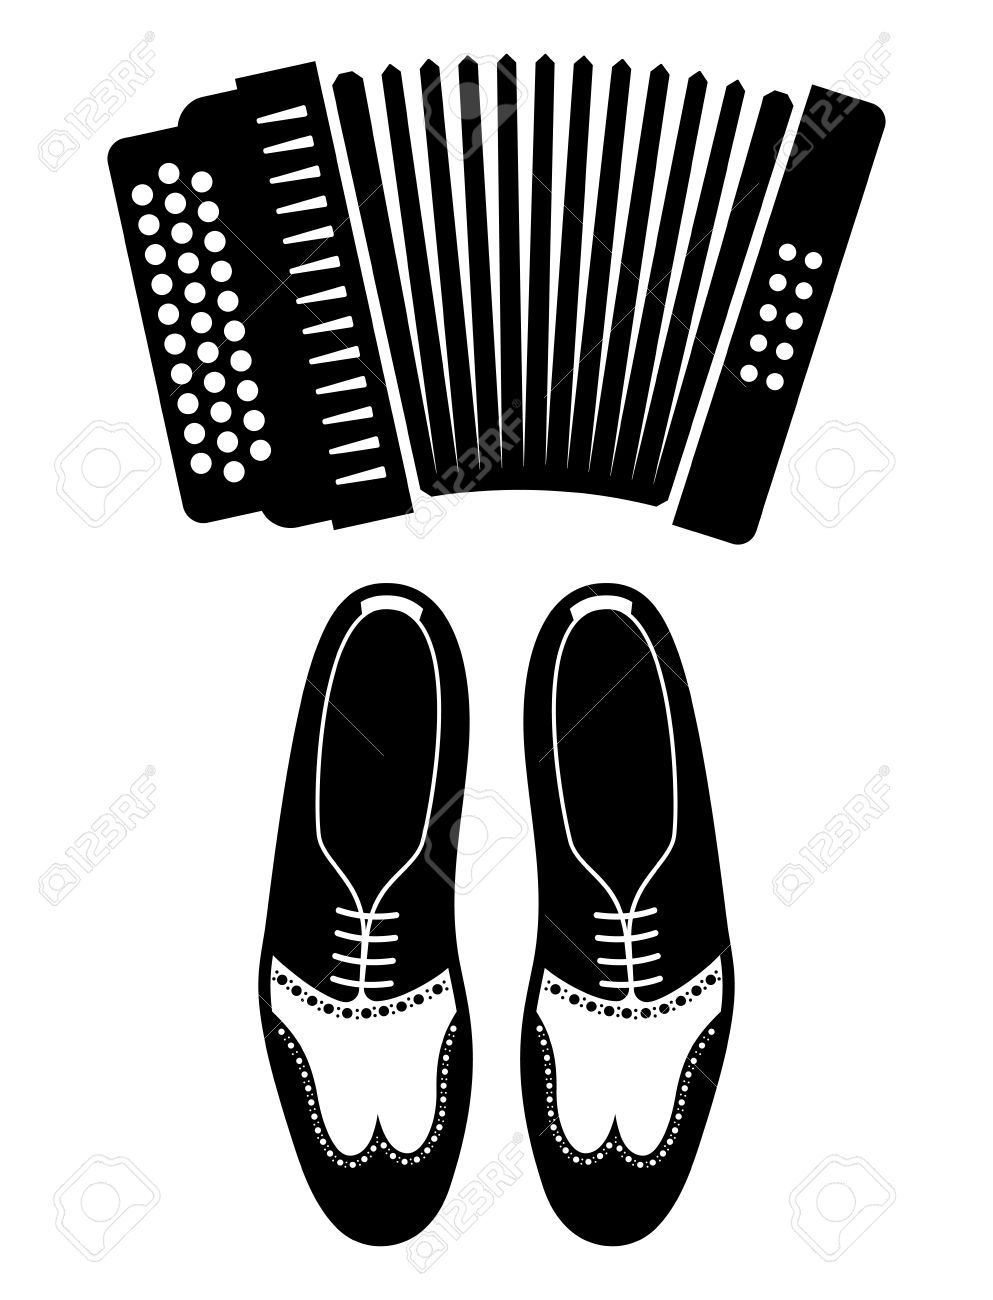 Tango vector icons - shoes and accordion - 47612621